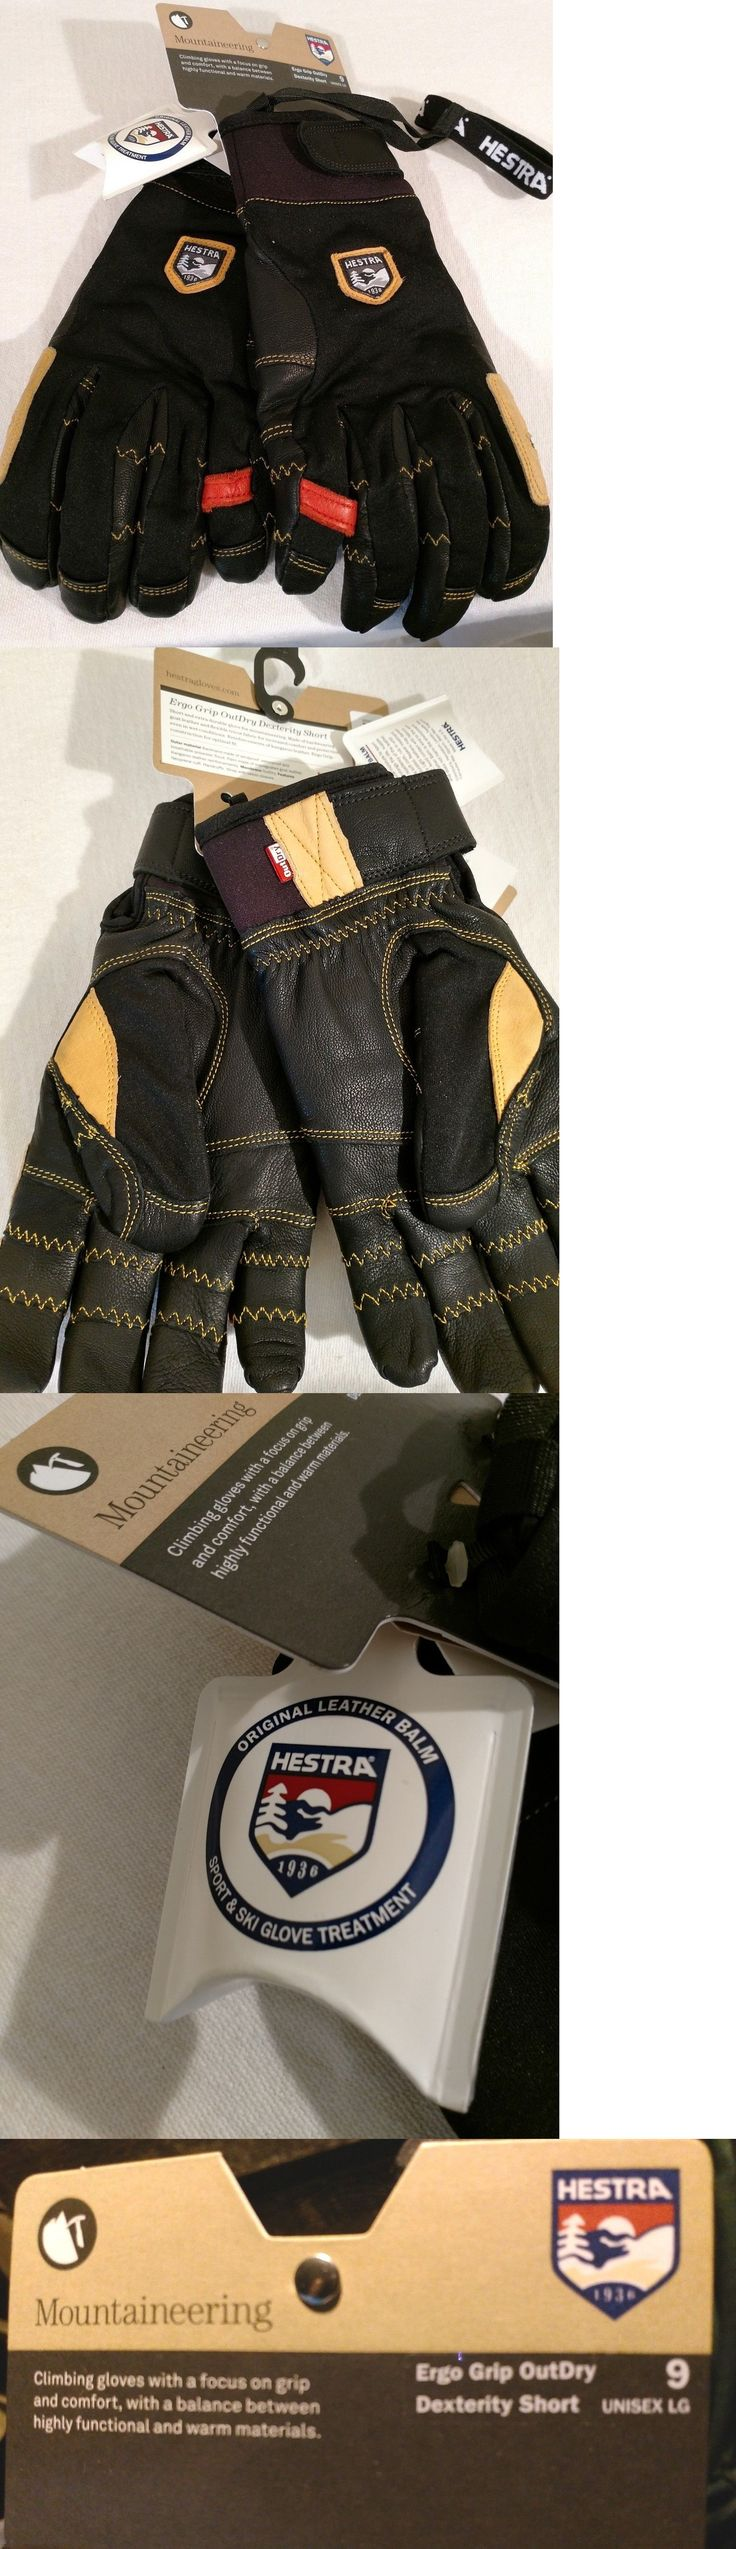 Gloves and Mittens 62172: Hestra Unisex Pro Winter Mountaineering Leather Ski Patrol Gloves Size 9 Newest -> BUY IT NOW ONLY: $99 on eBay!